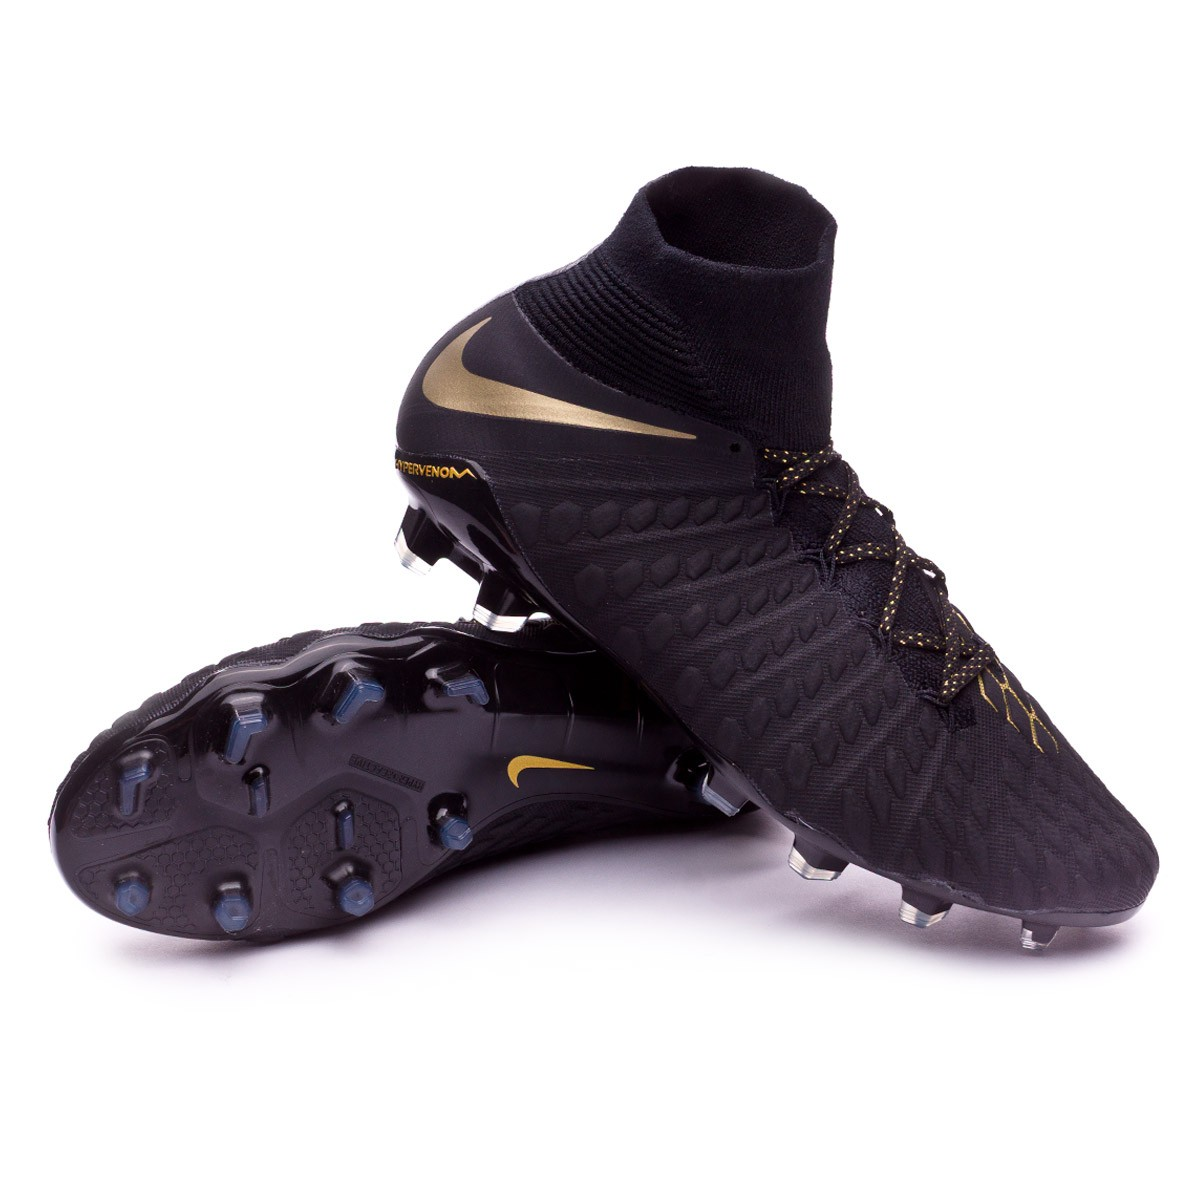 Zapatos de fútbol Nike Hypervenom Phantom III Elite DF FG Black ... 62ee67ac93cd2